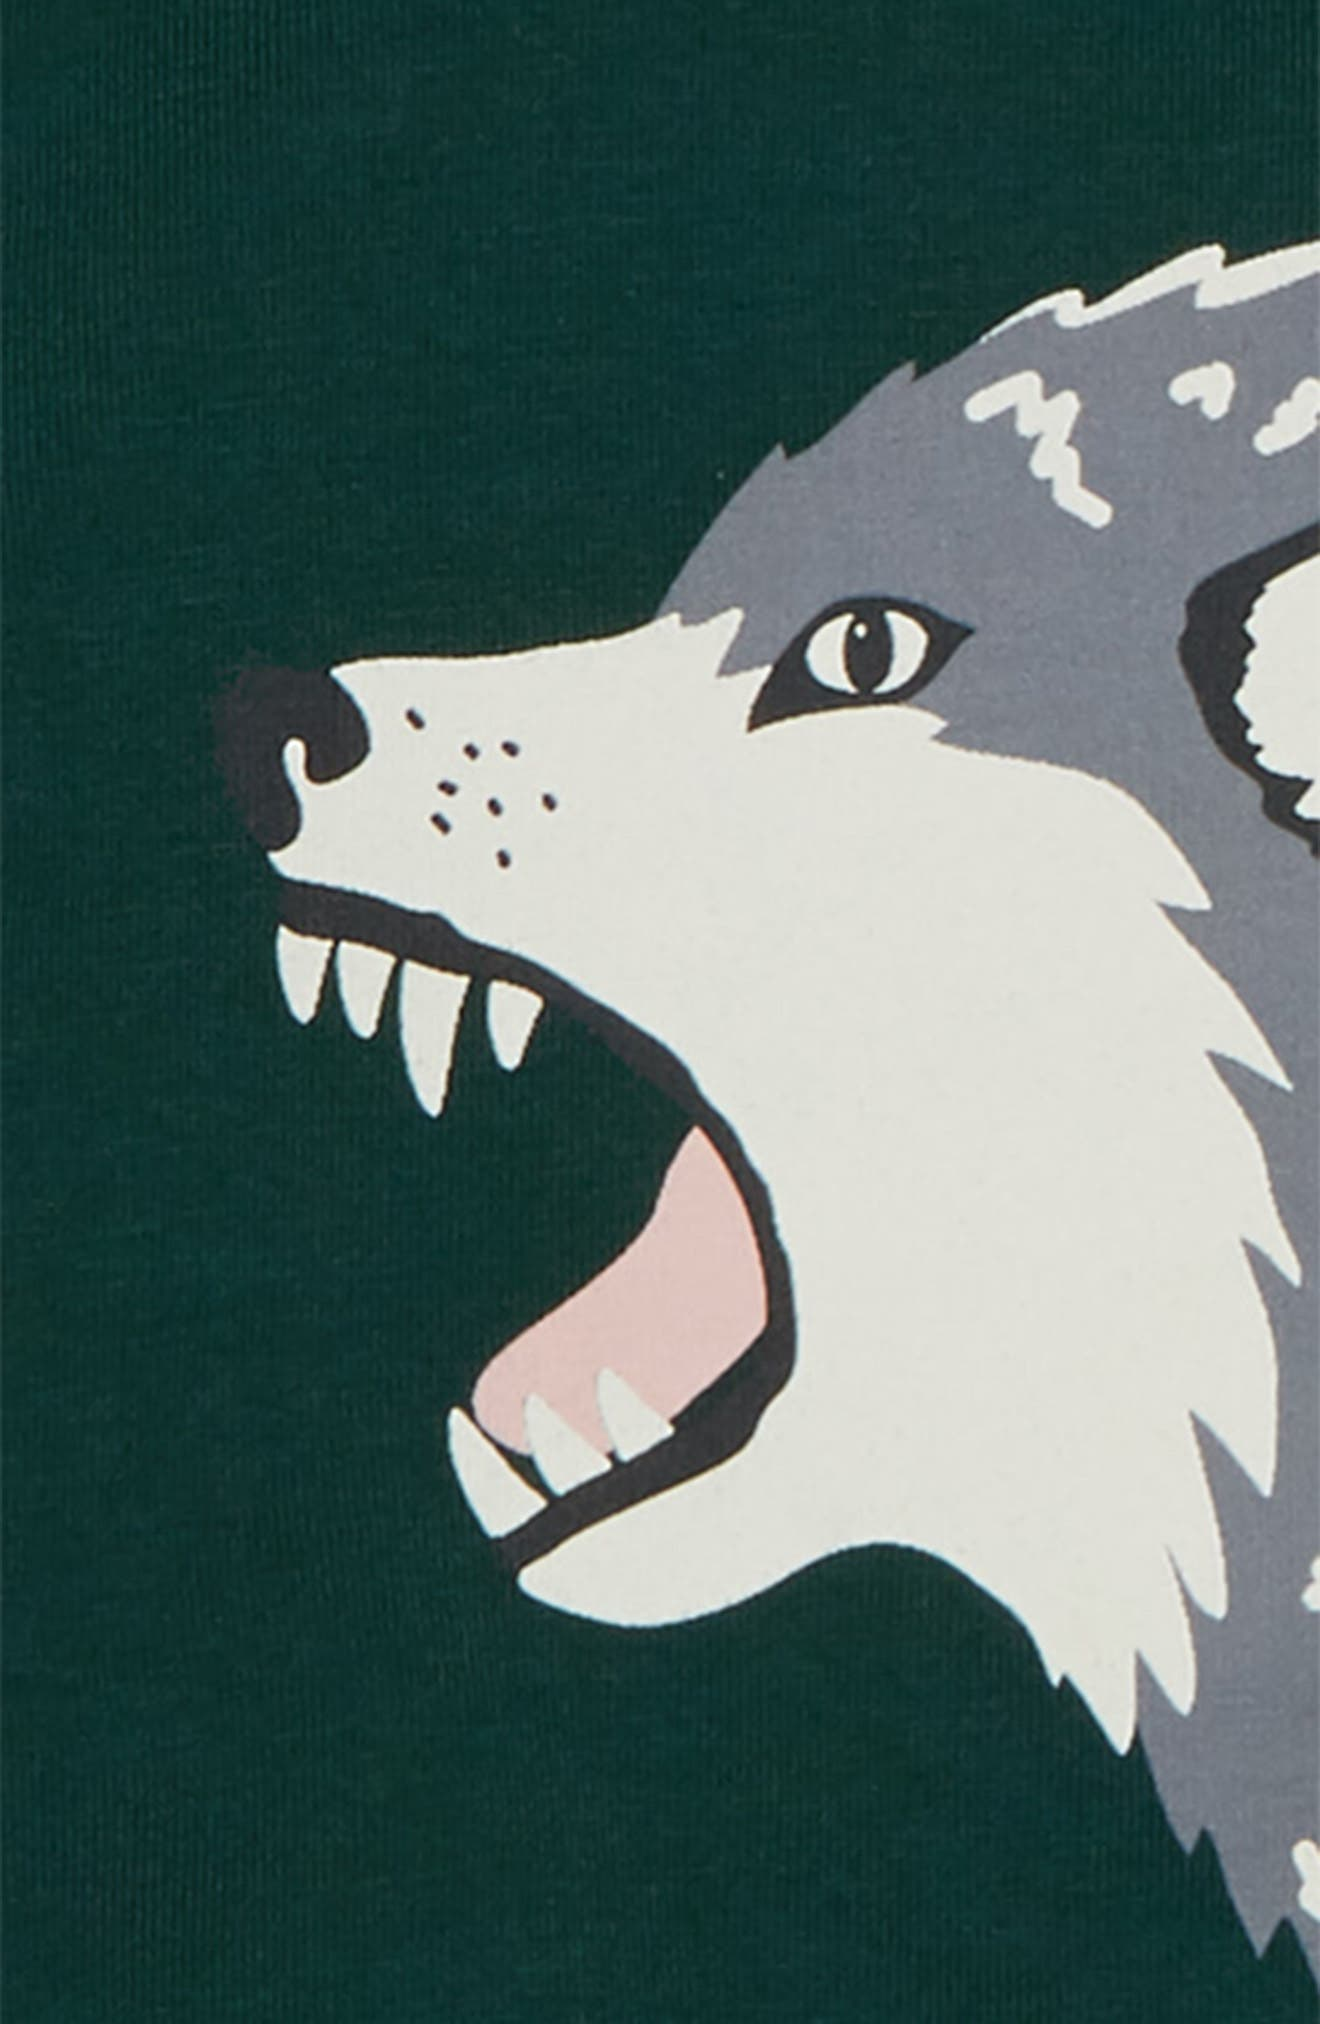 Glow in the Dark Wolf T-Shirt,                             Alternate thumbnail 2, color,                             Scotts Pine Green